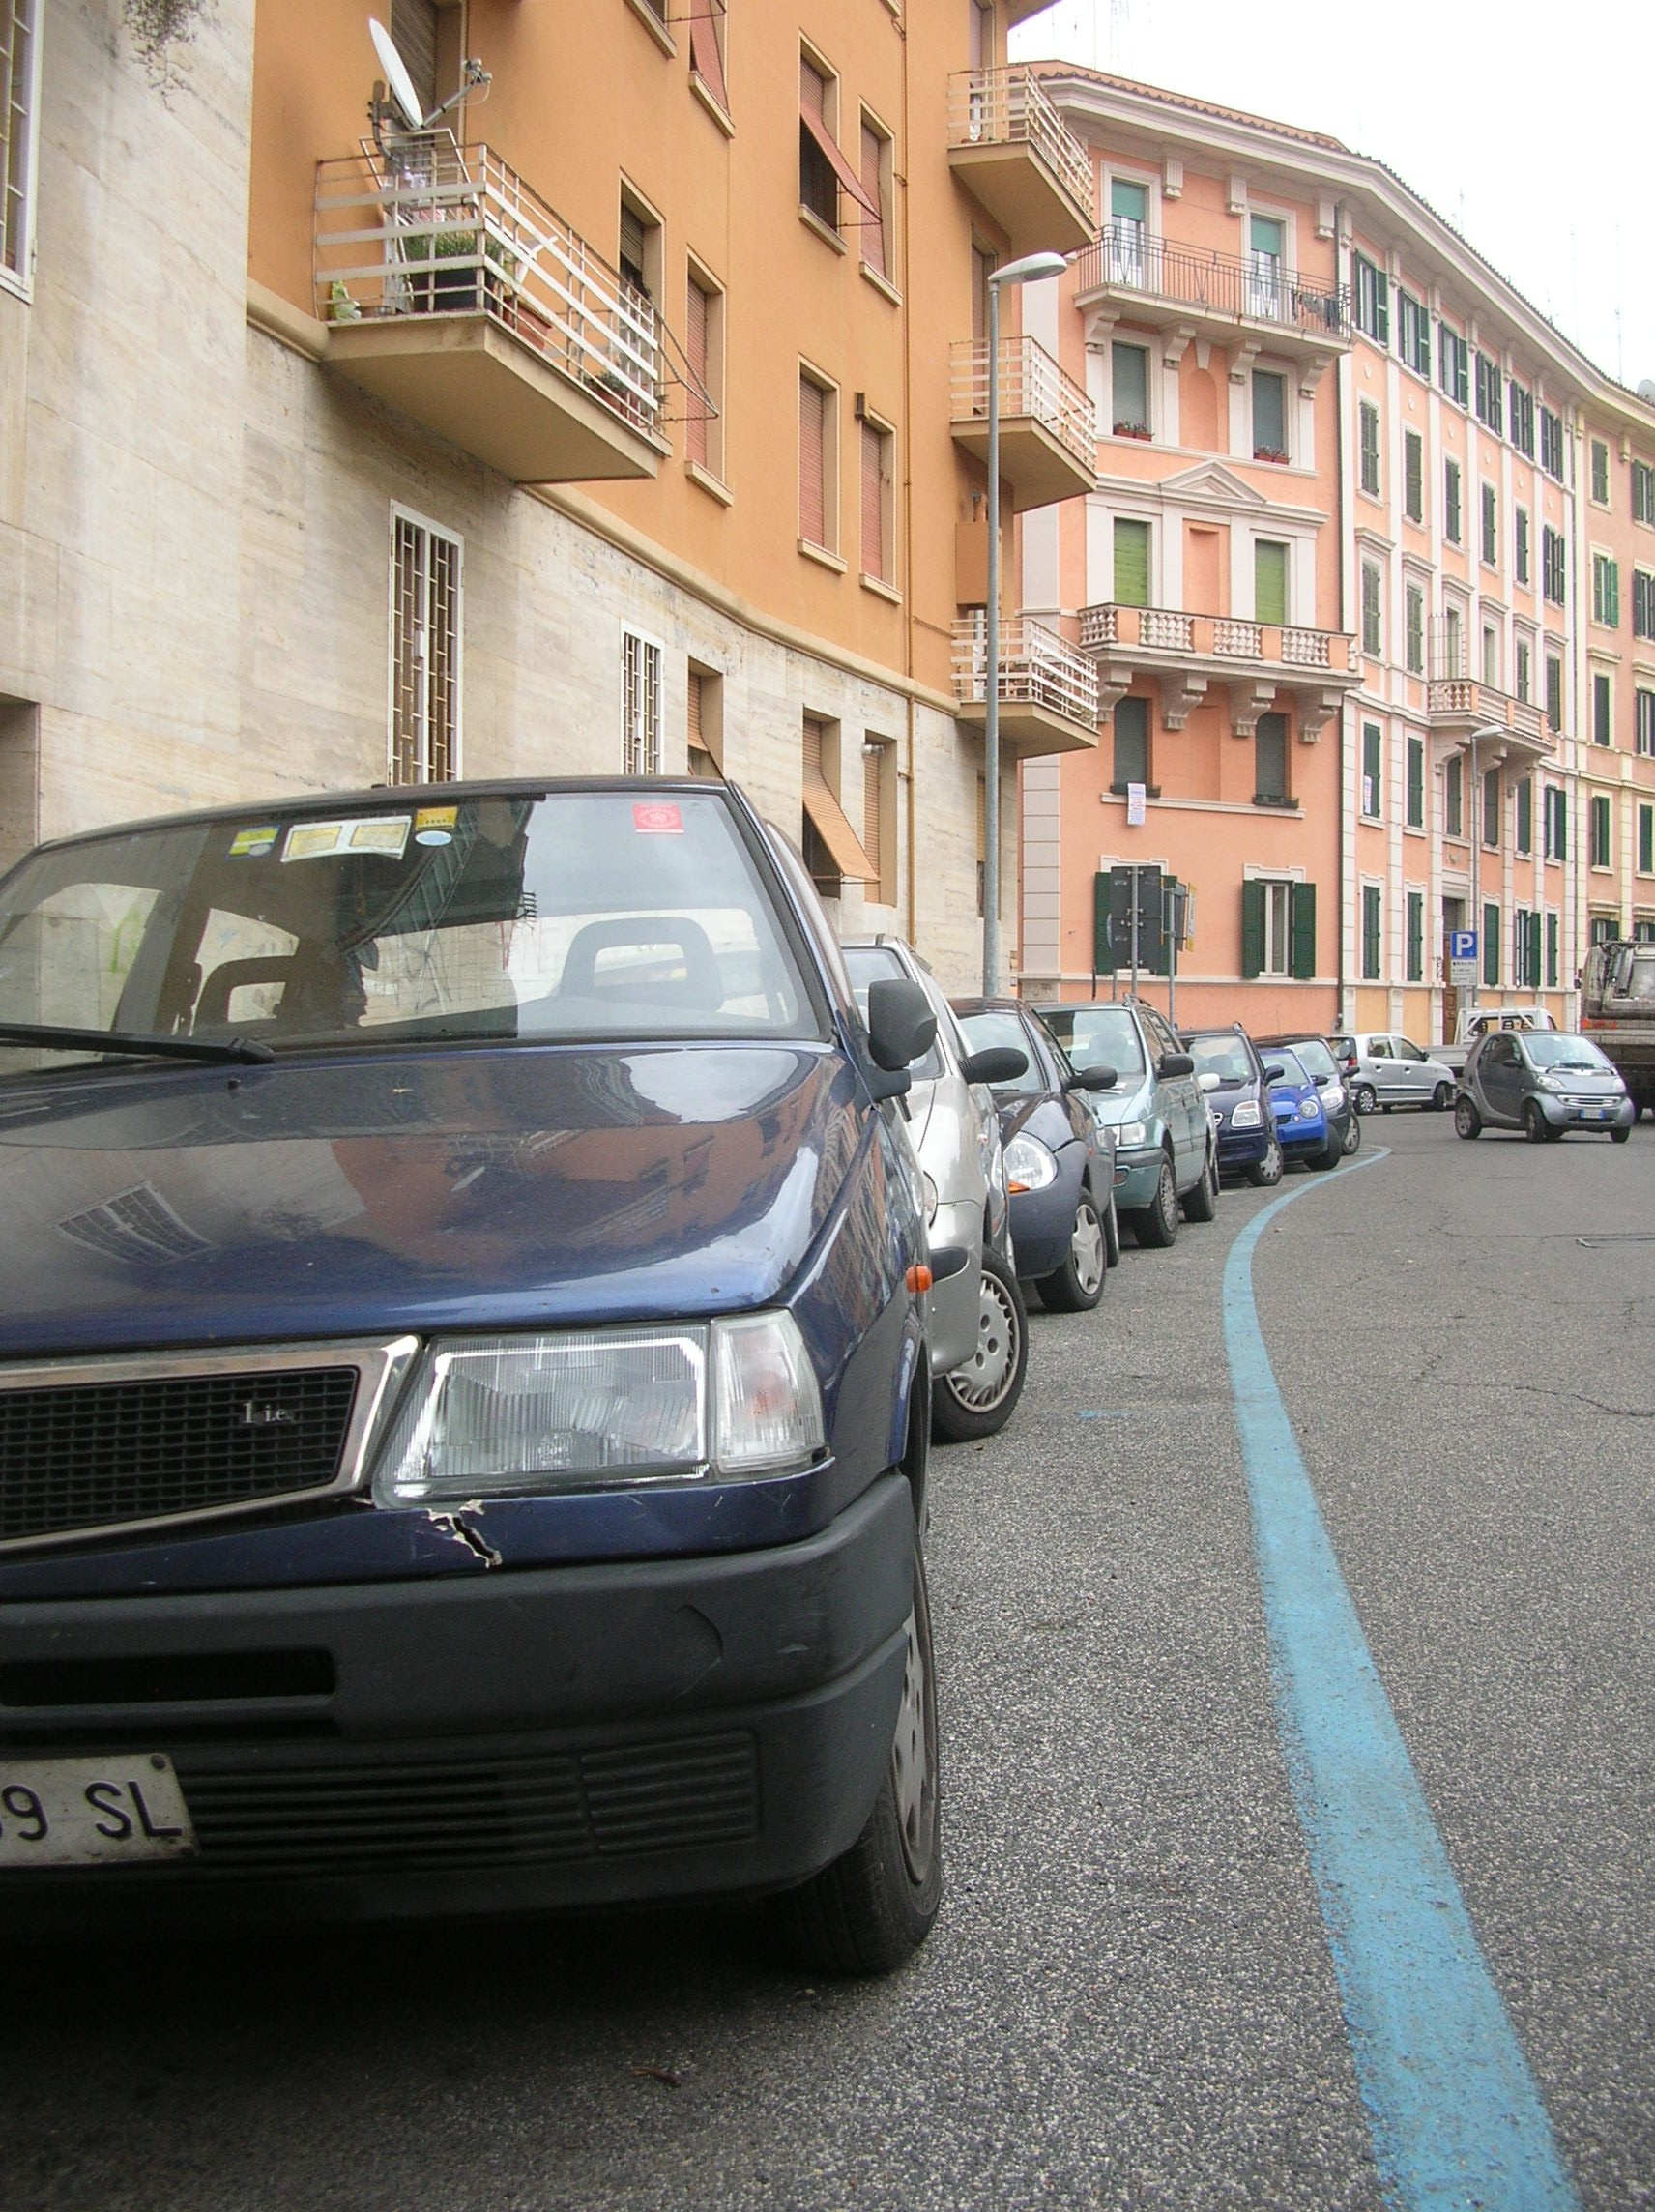 Small cars squeeze extra inches from Rome's limited parking